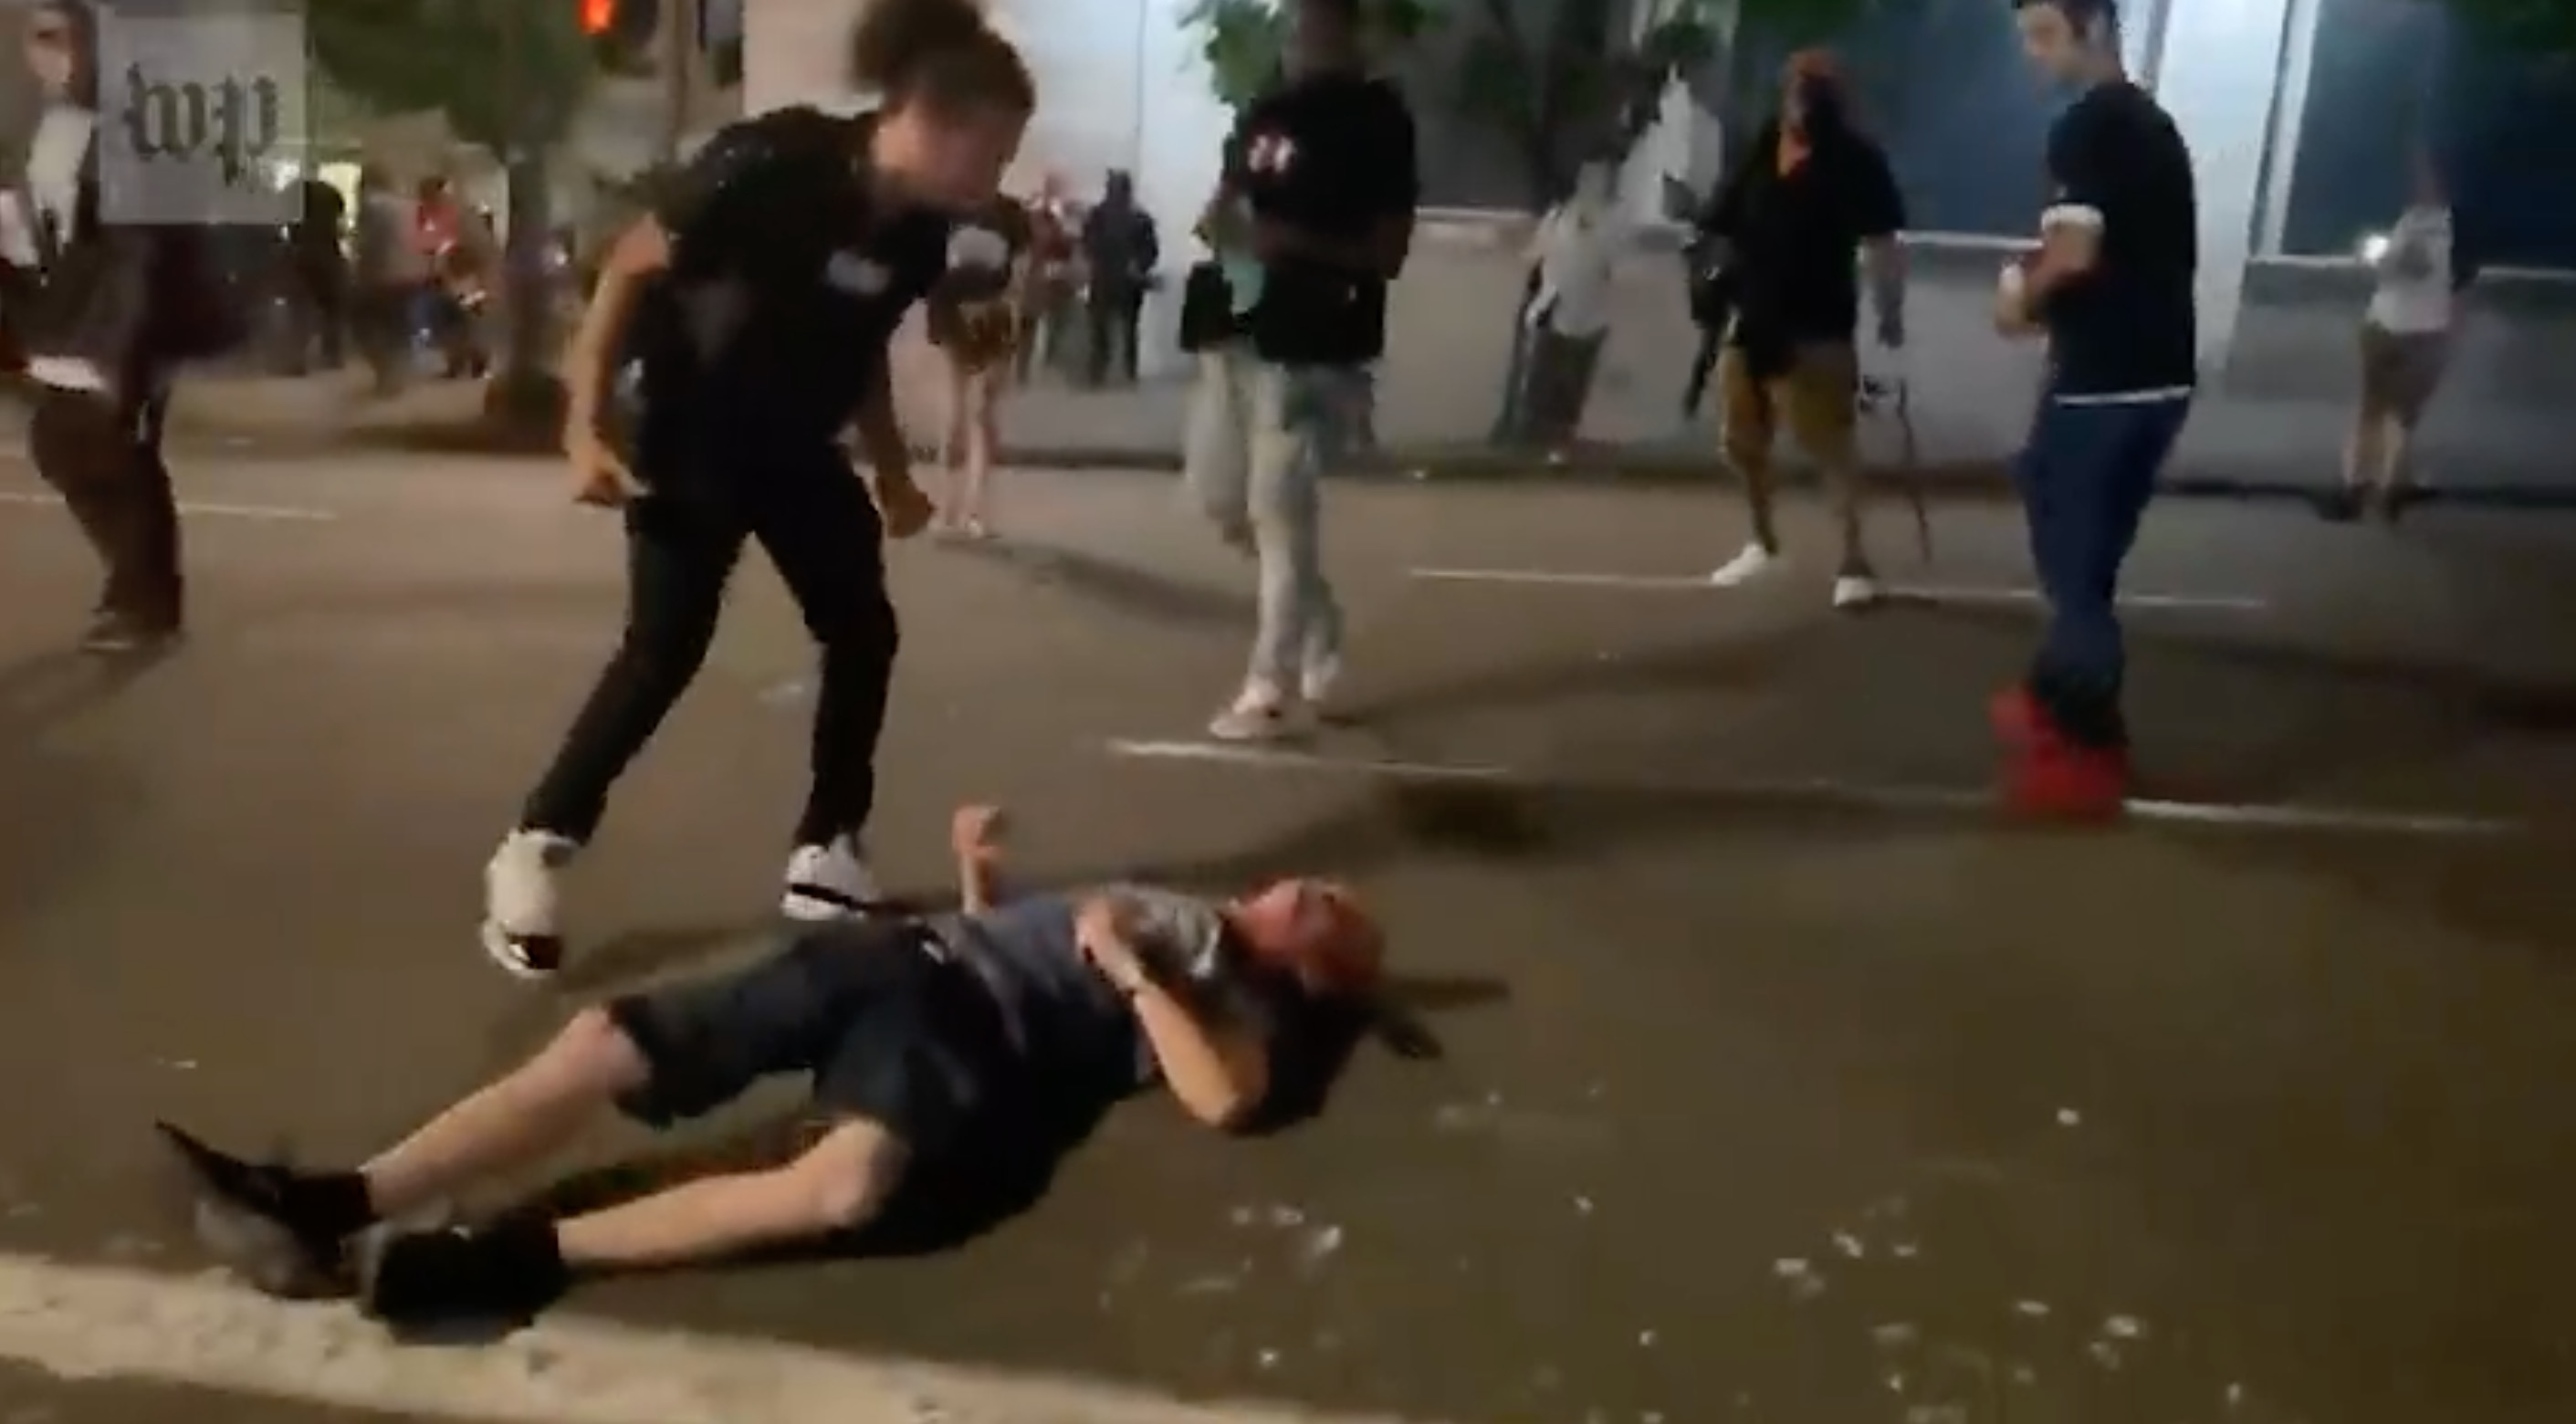 Portland Protesters Caught on Video Beating Man Unconscious Following Truck Crash